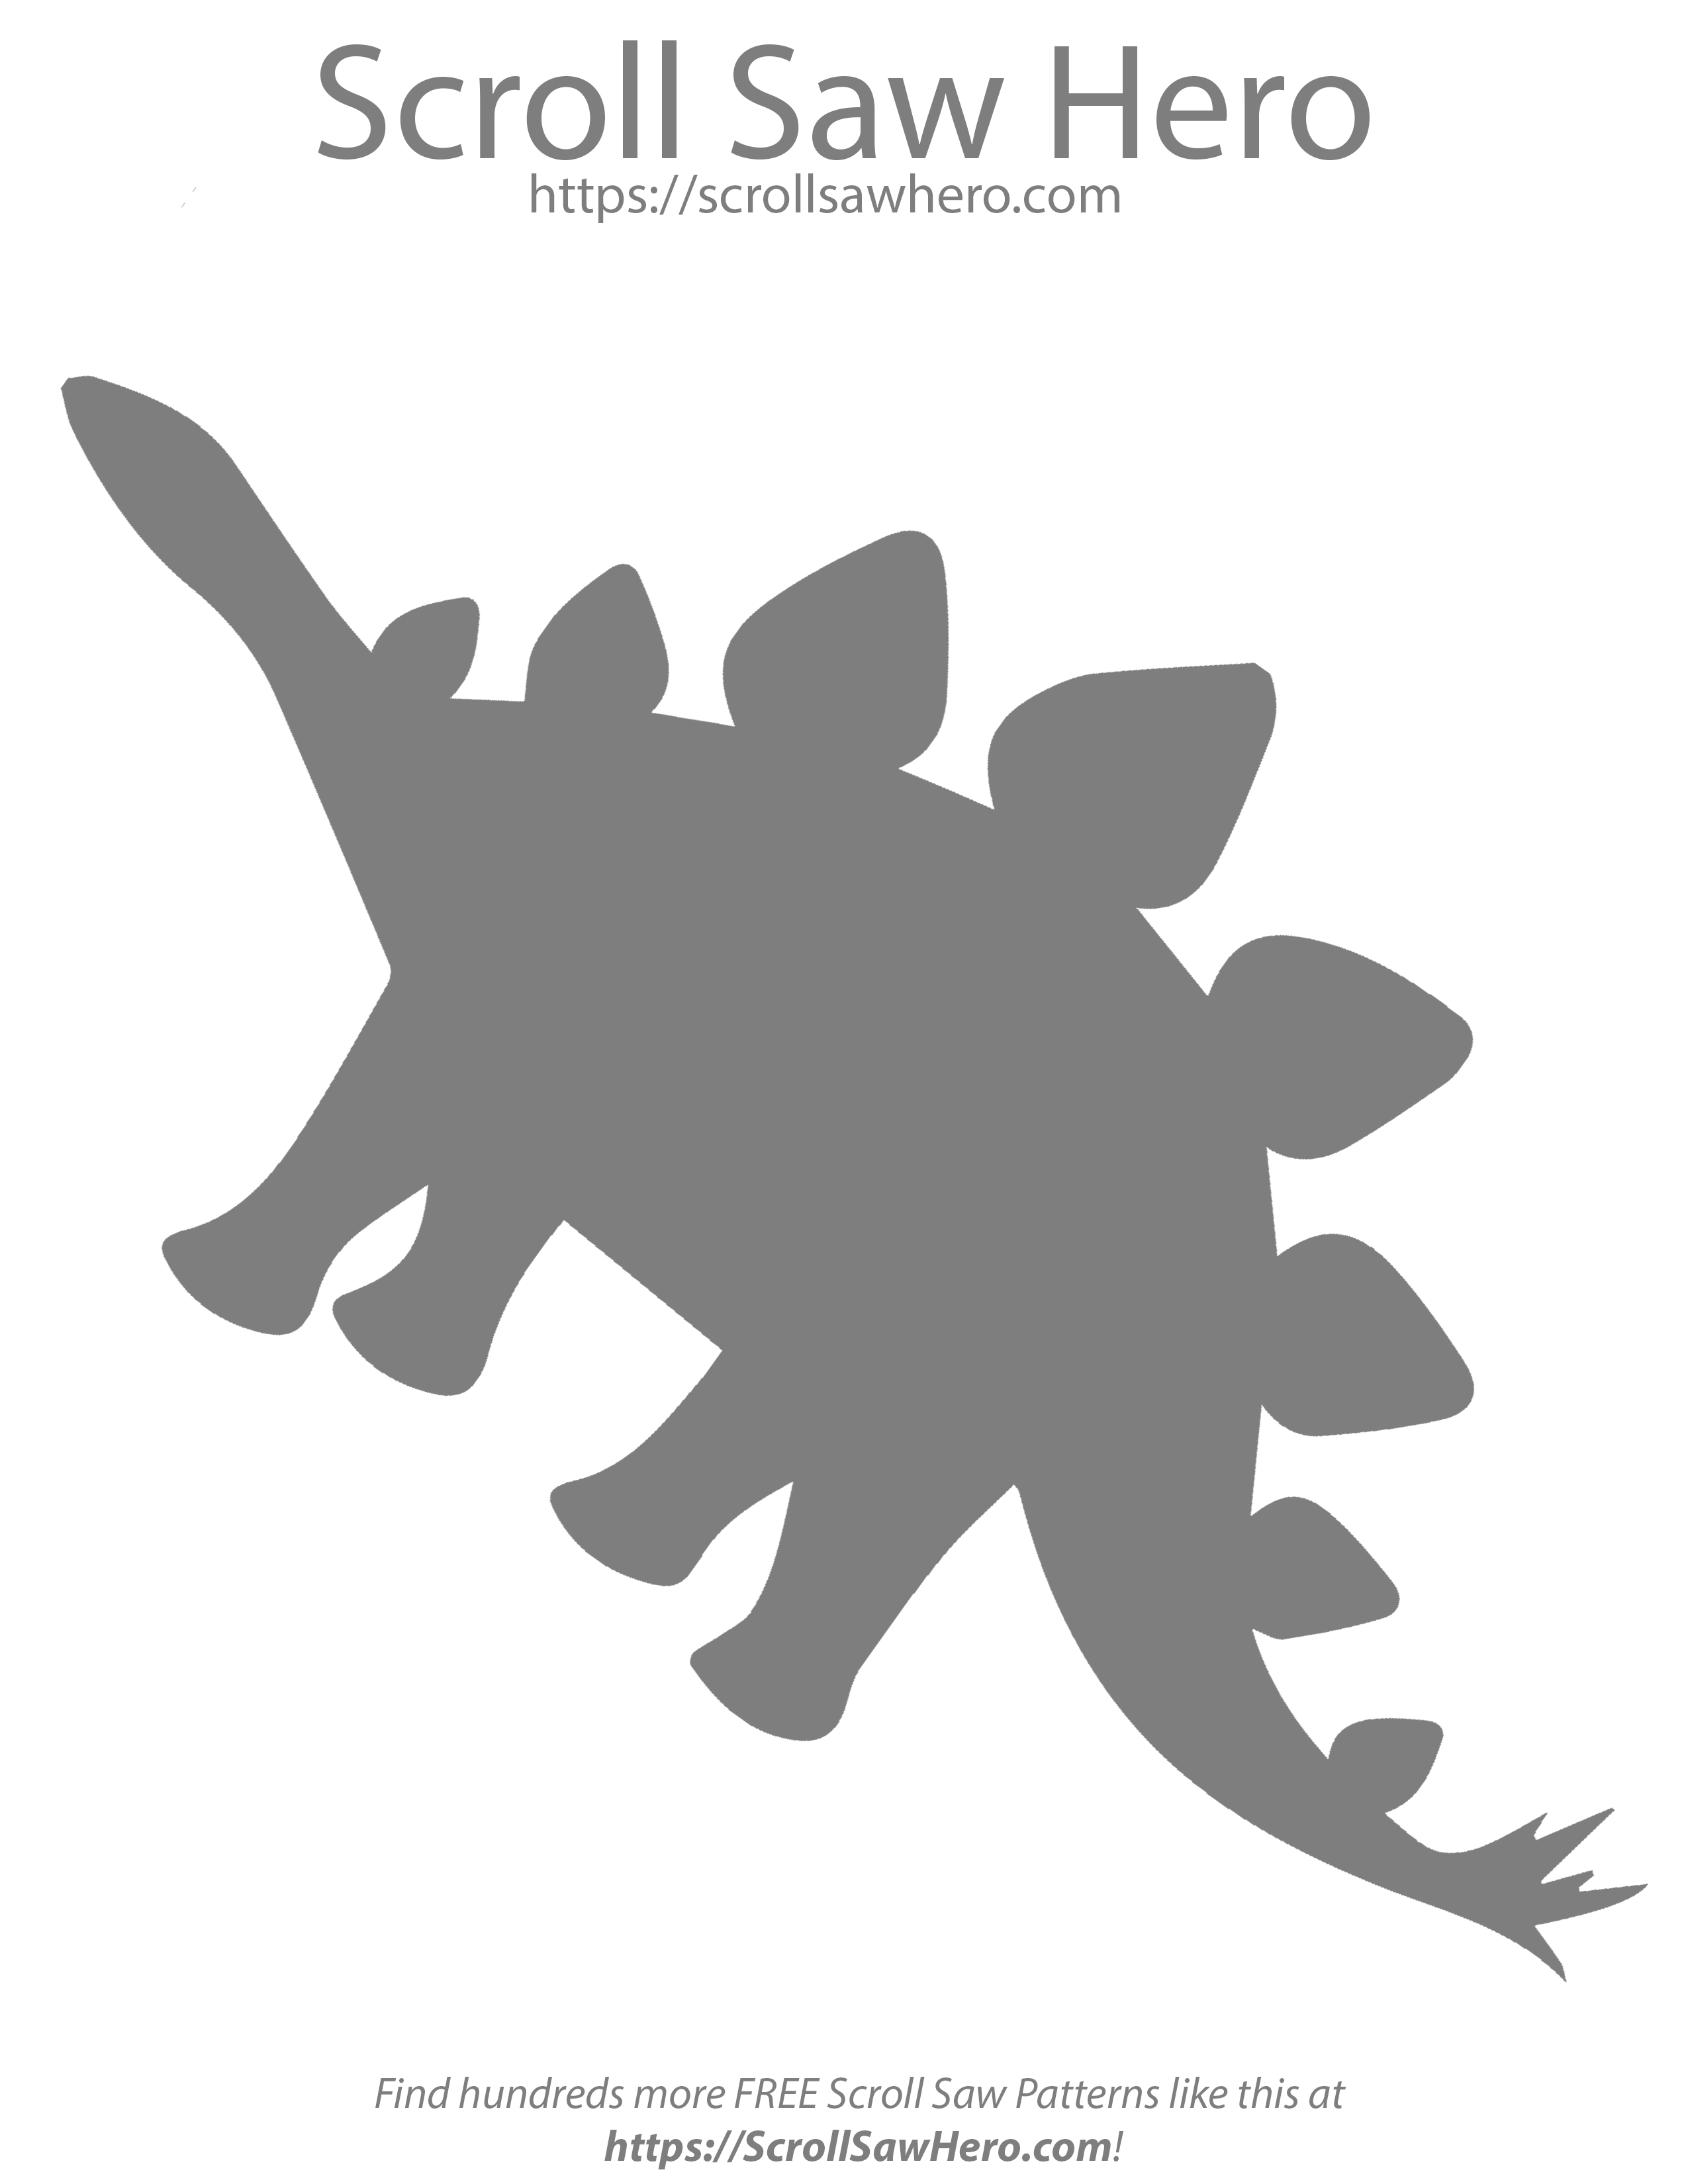 picture of a stegosaurus latest entertainment news fun coloring pages for kids to stegosaurus a picture of